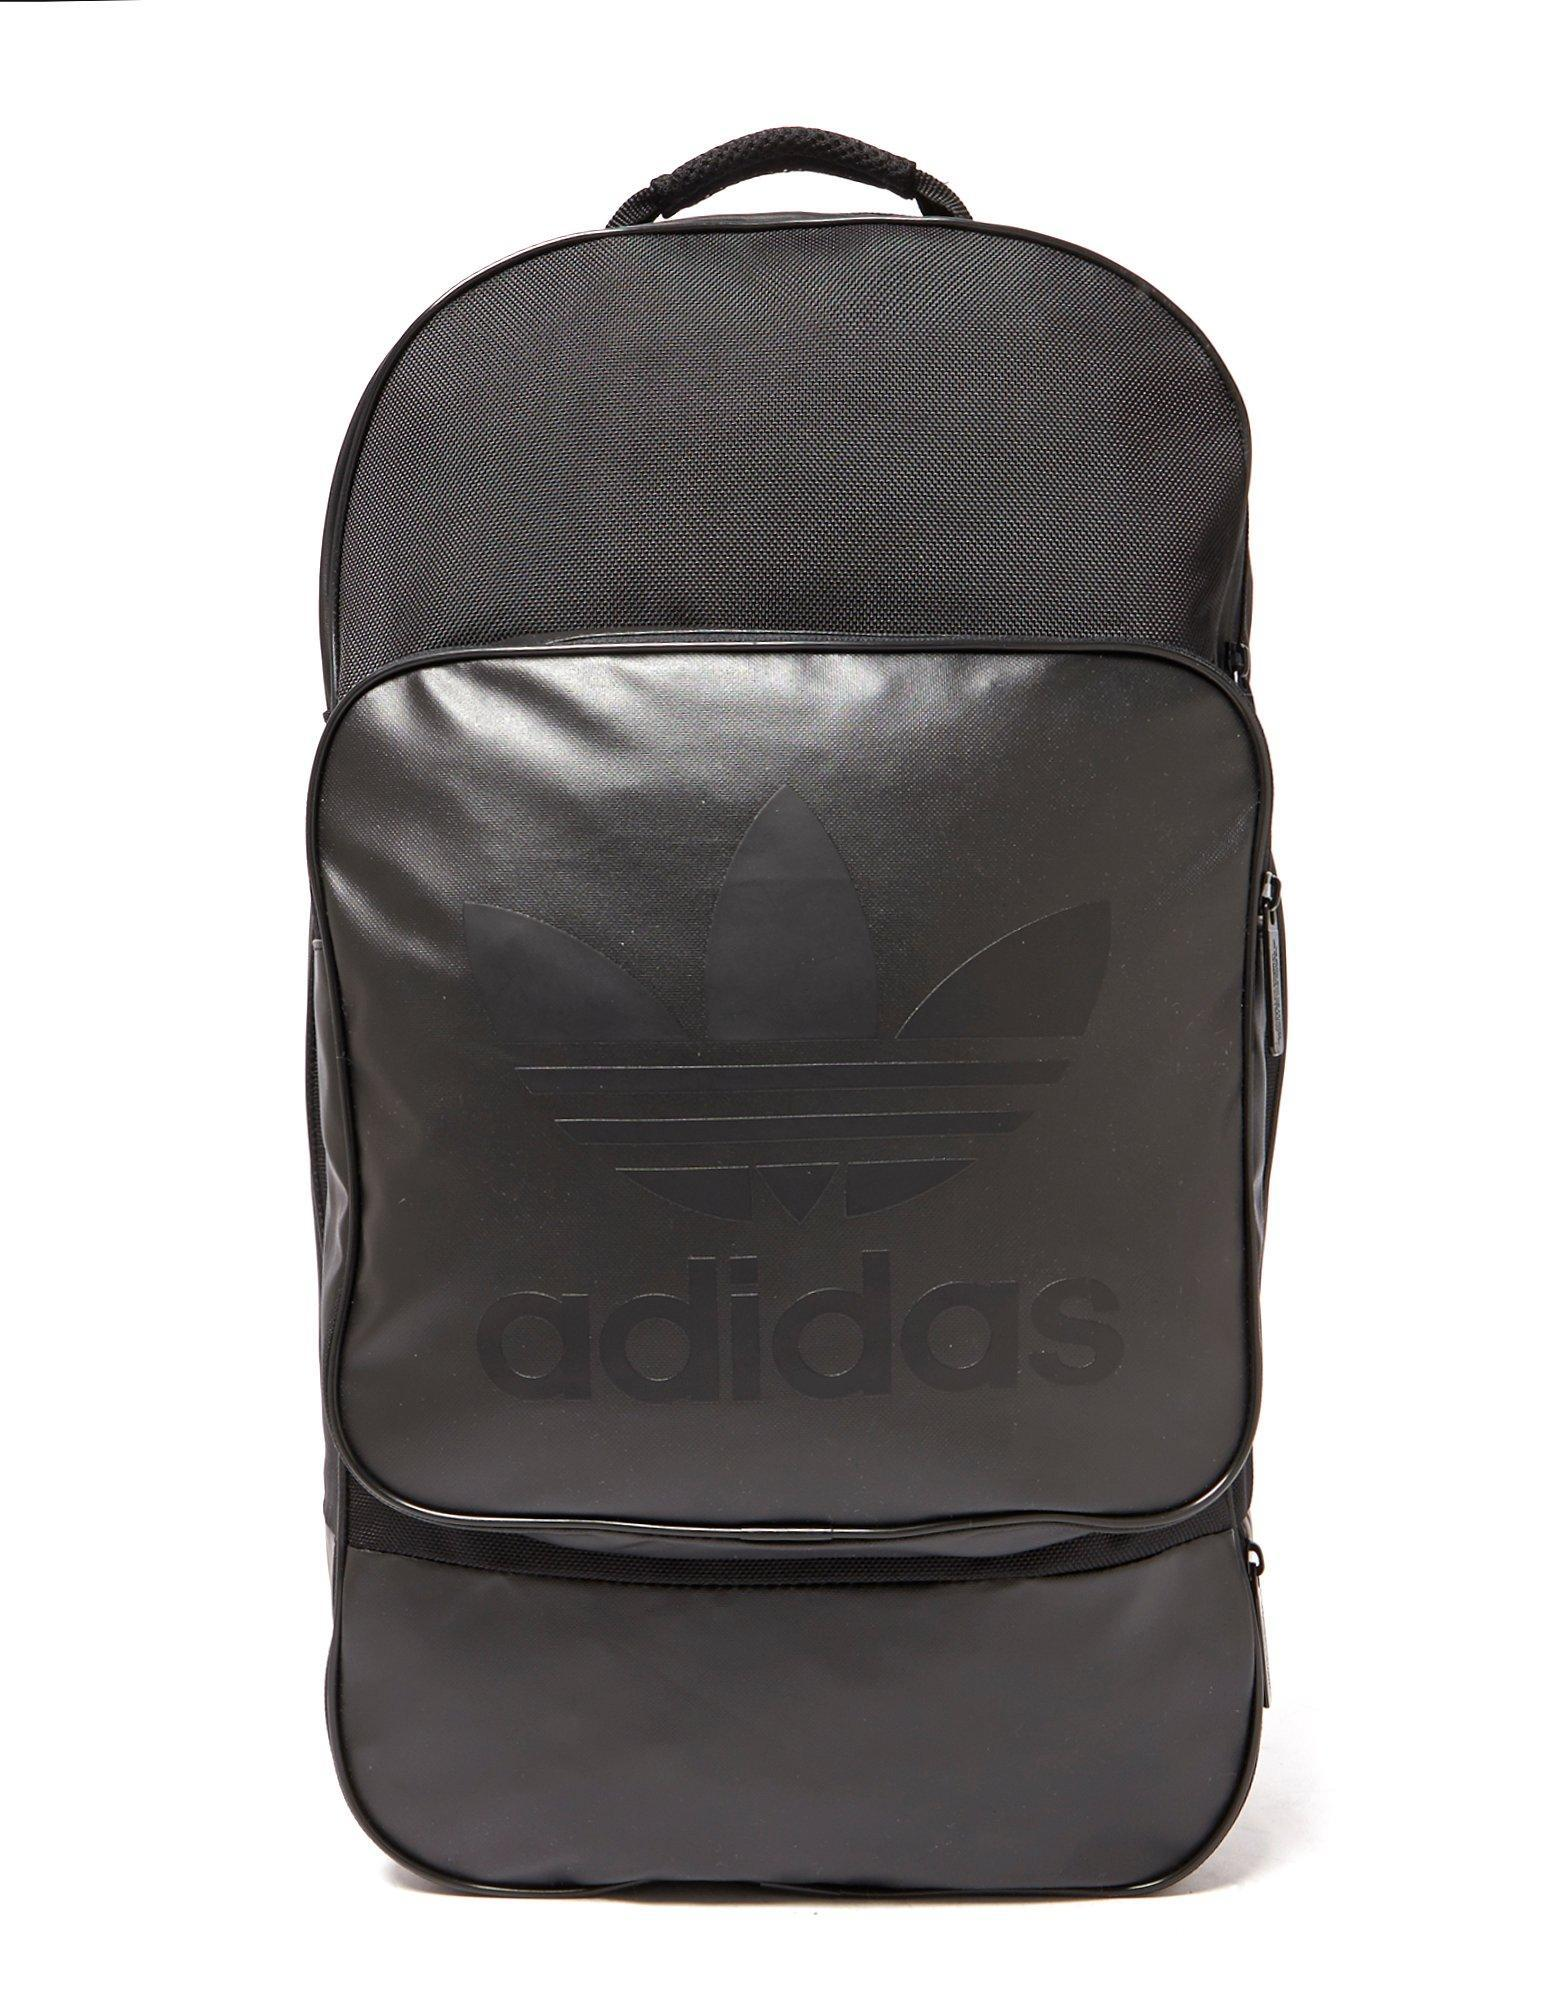 c57dc799e768 Lyst - adidas Originals Street Sport Backpack in Black for Men